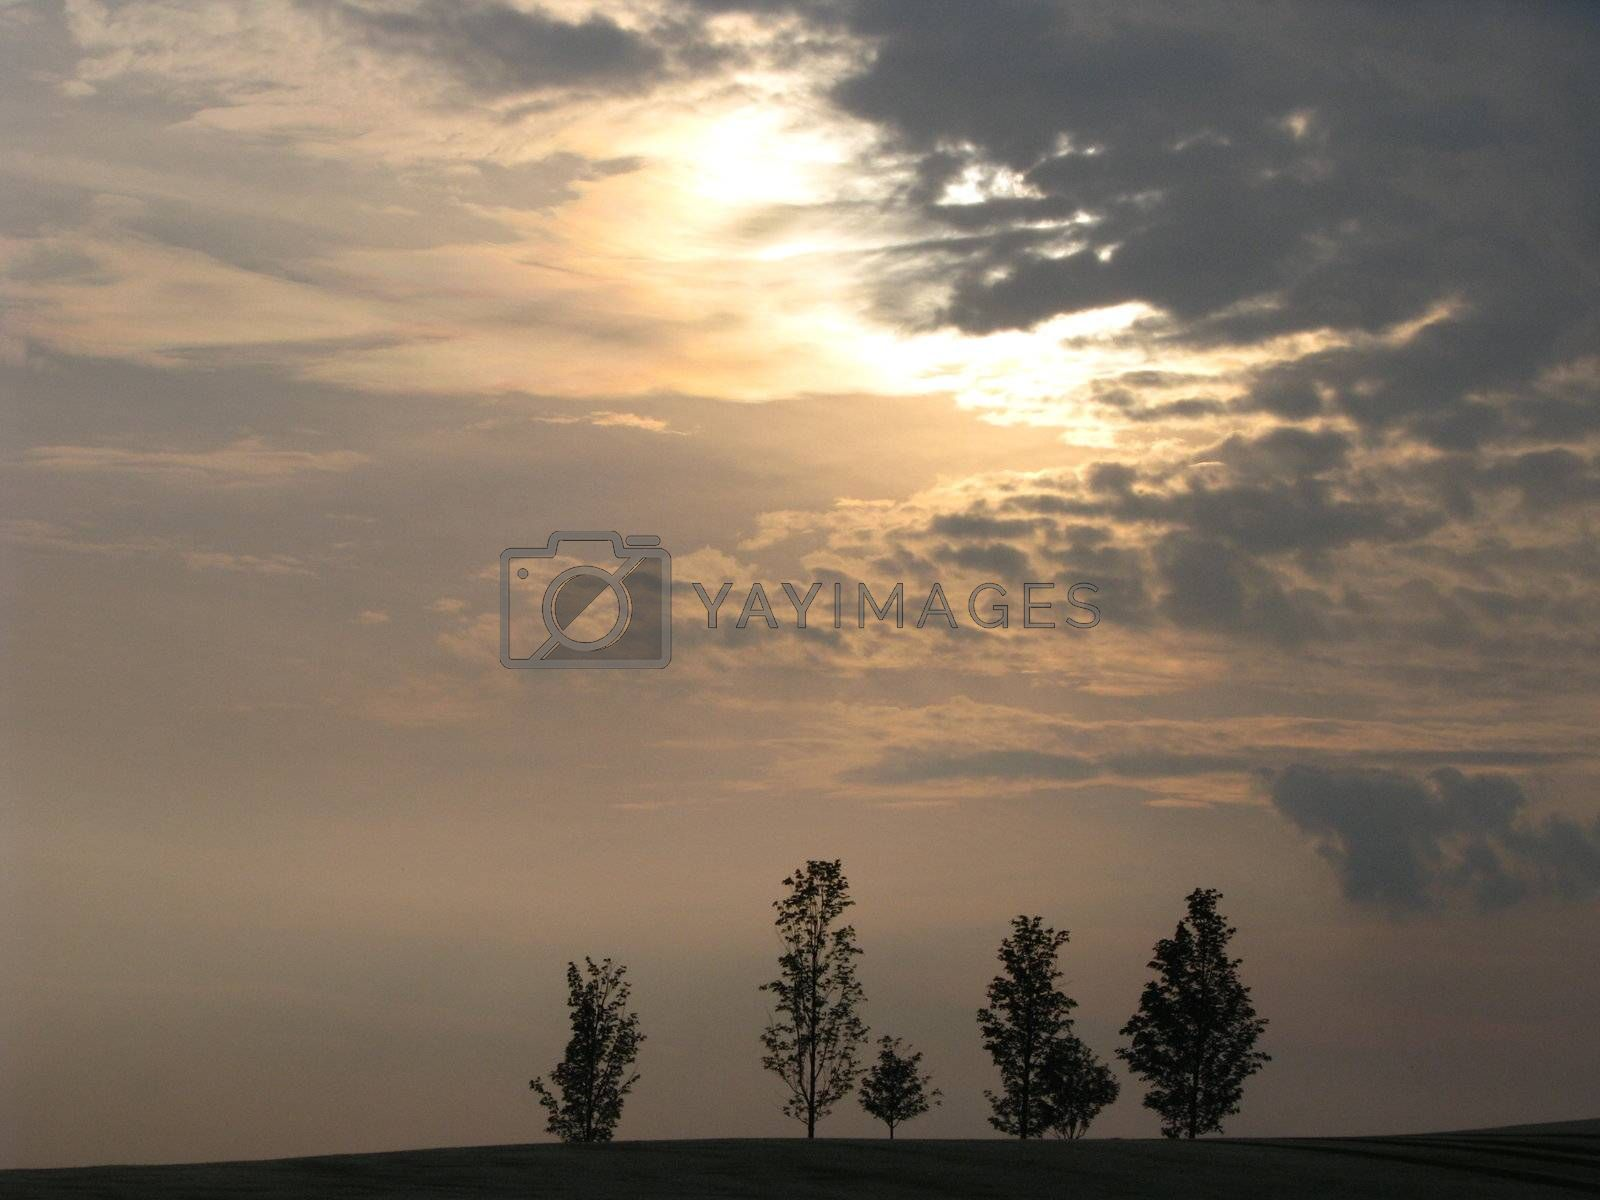 Royalty free image of Trees by ewilliamsdesign